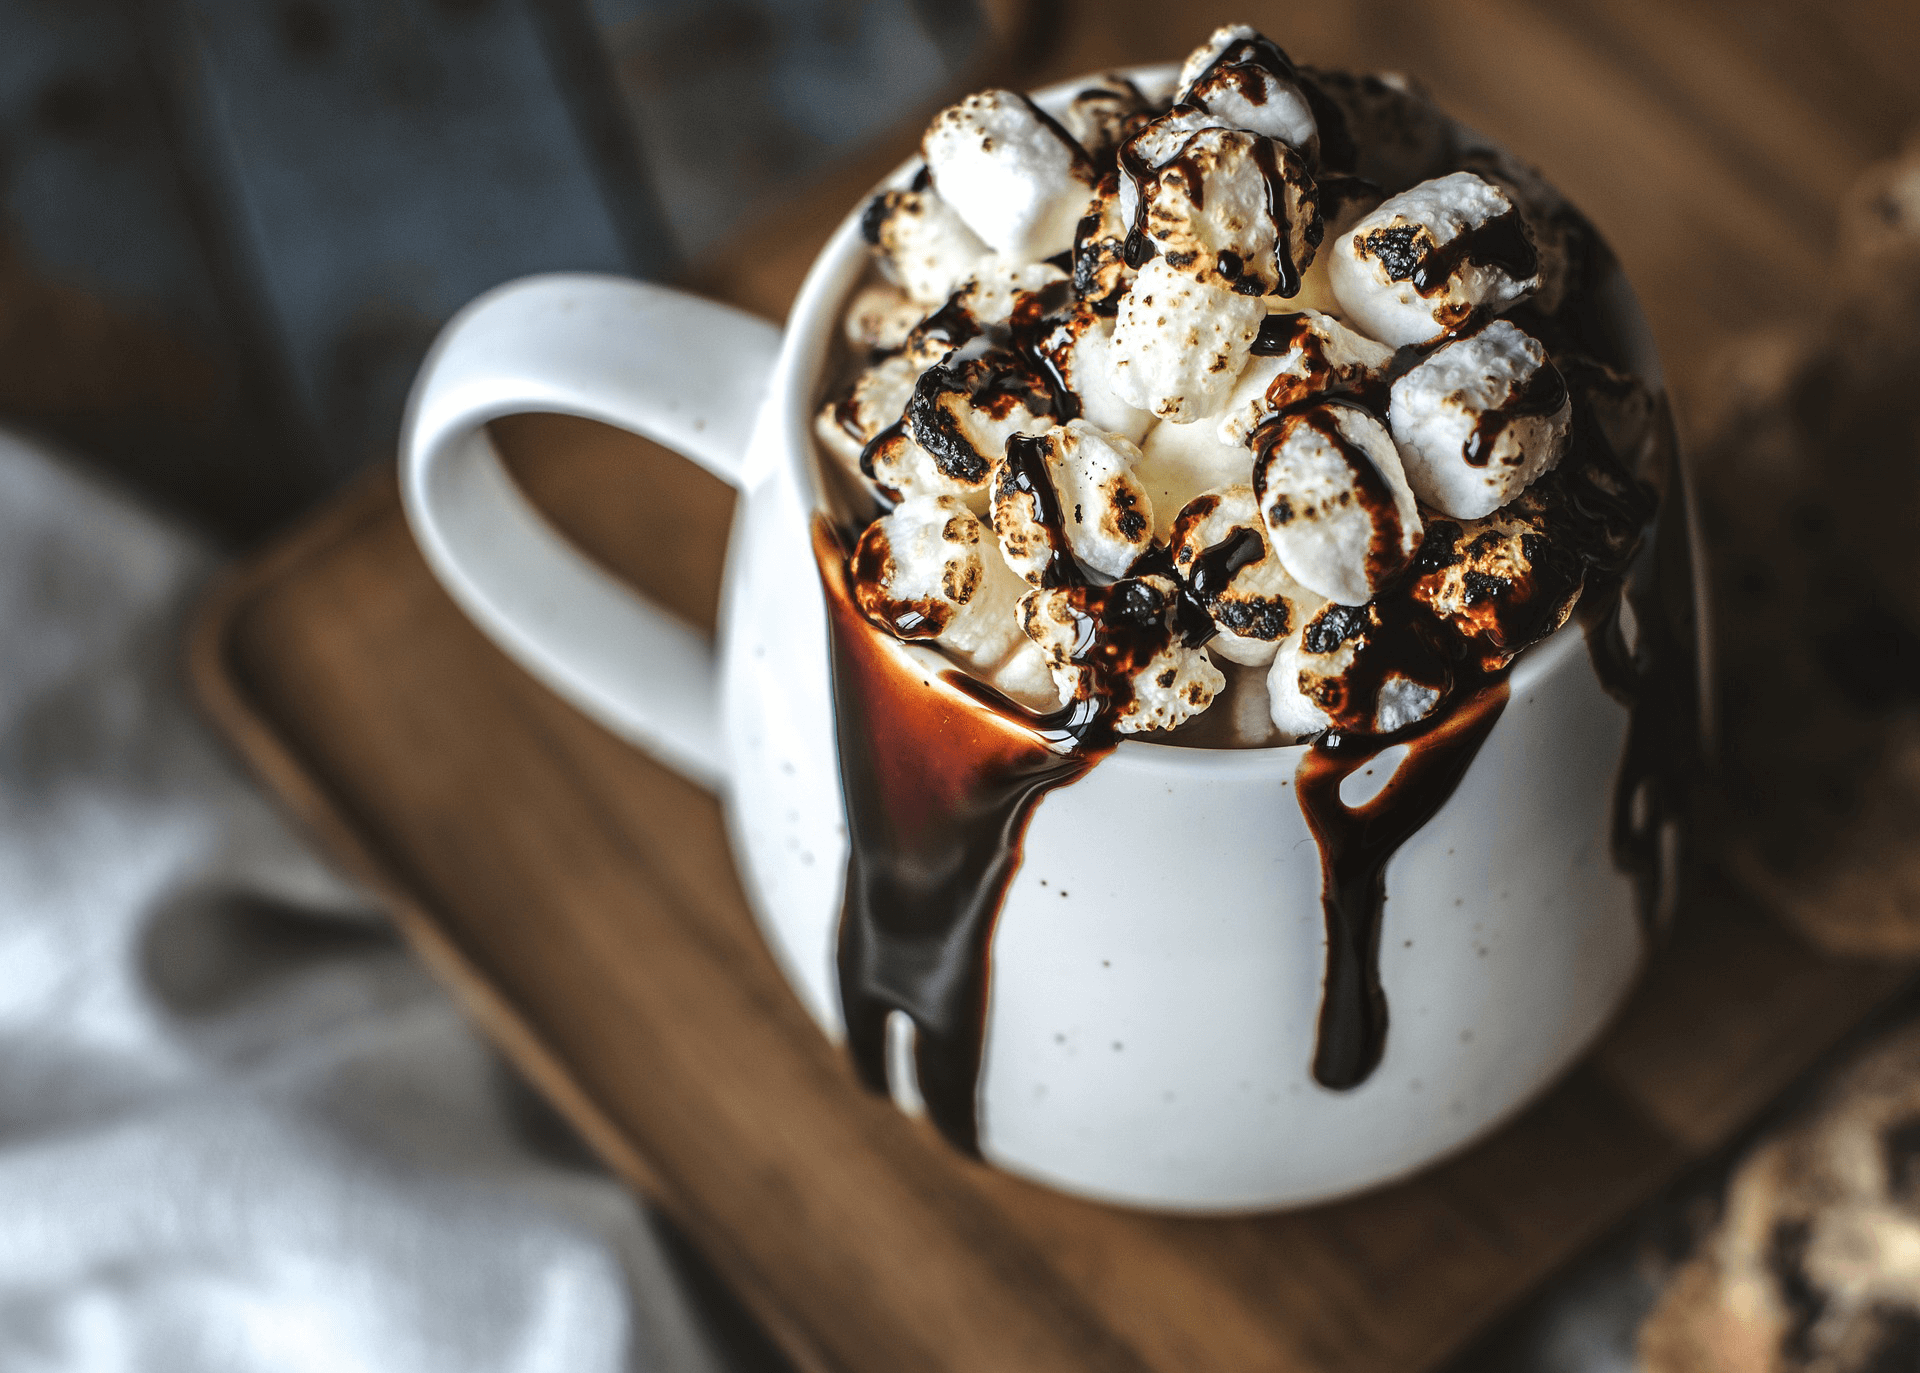 A PNG of chocolate with marshmellows.